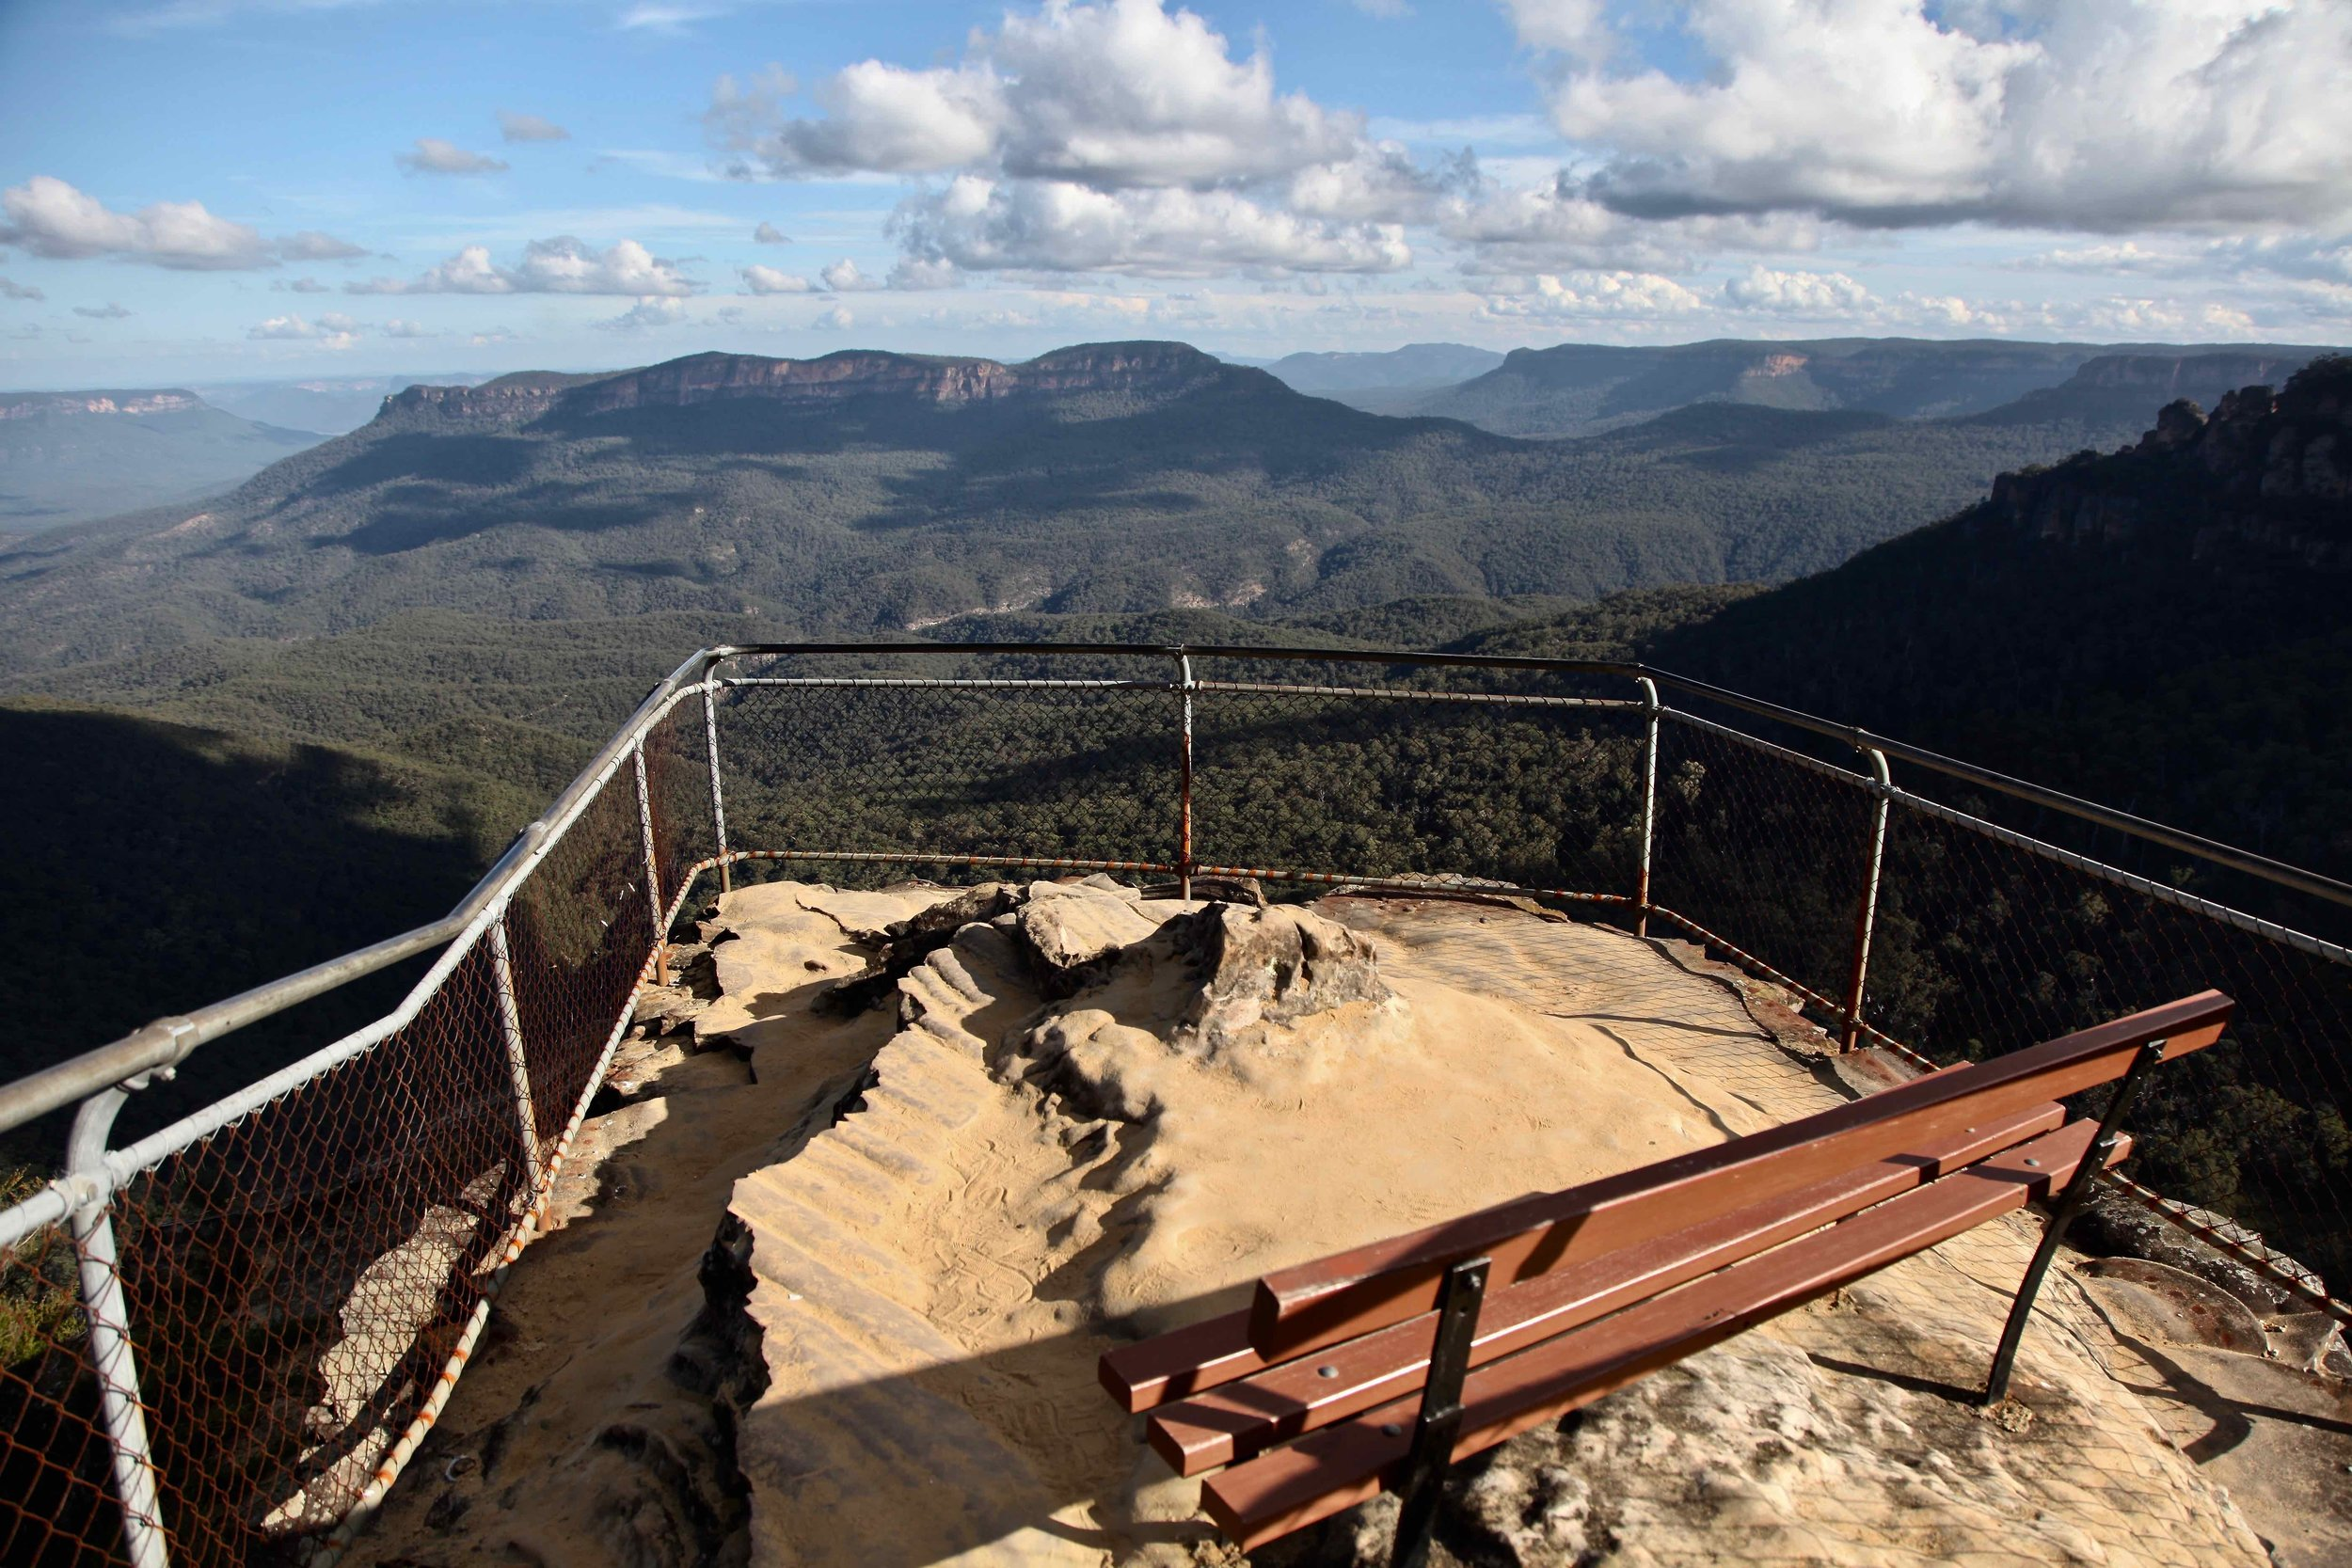 Pack a picnic and pull up a pew and enjoy this view of the Blue Mountains near Leura.